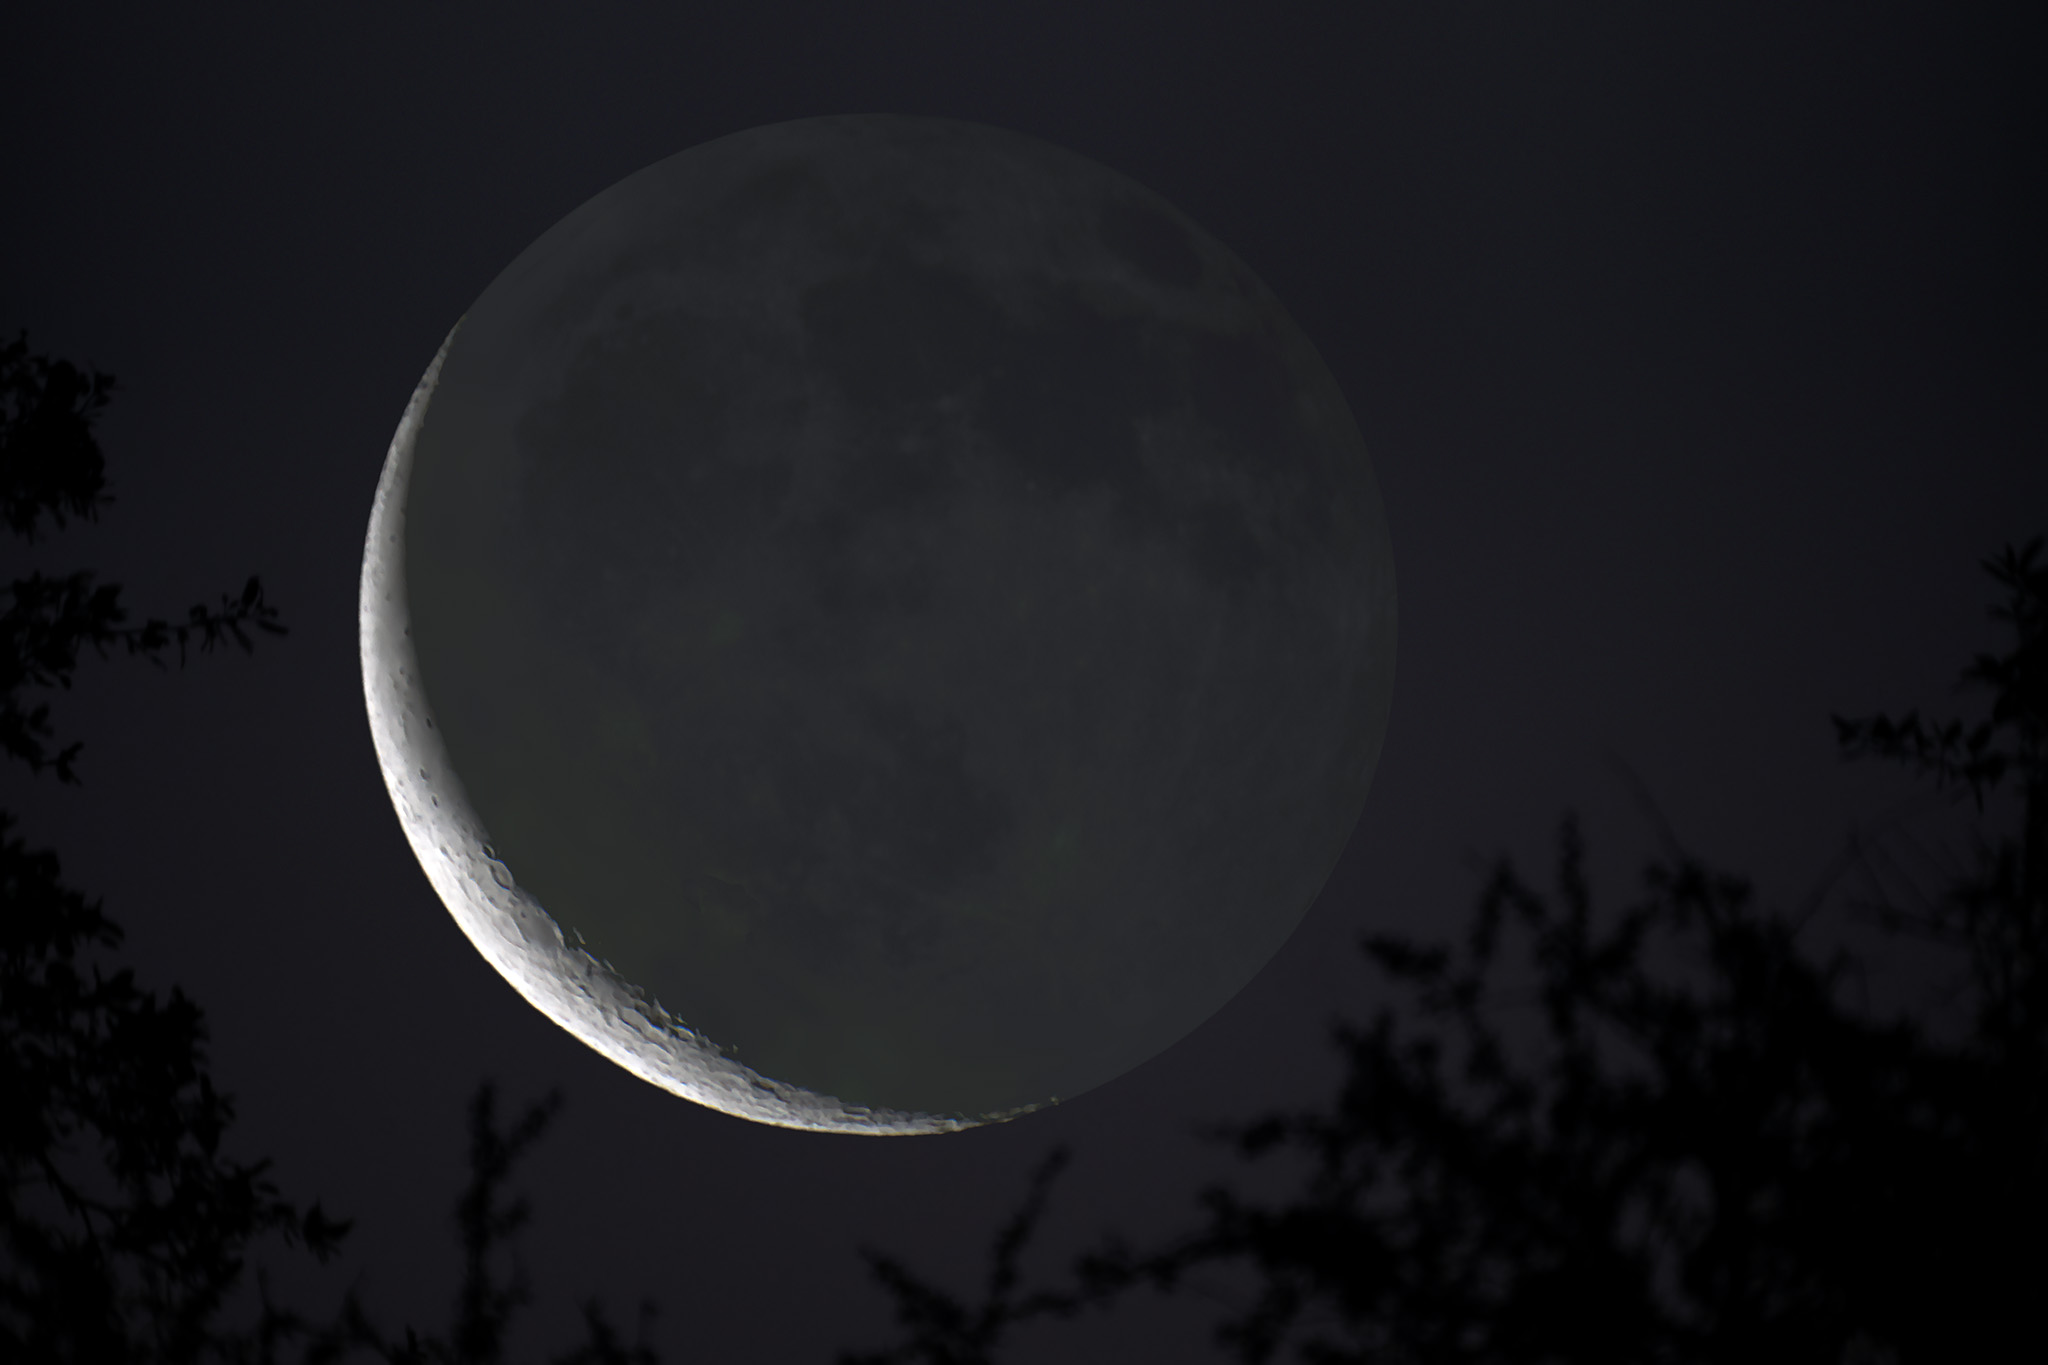 Spring Waning Crescent Moon with Earthshine